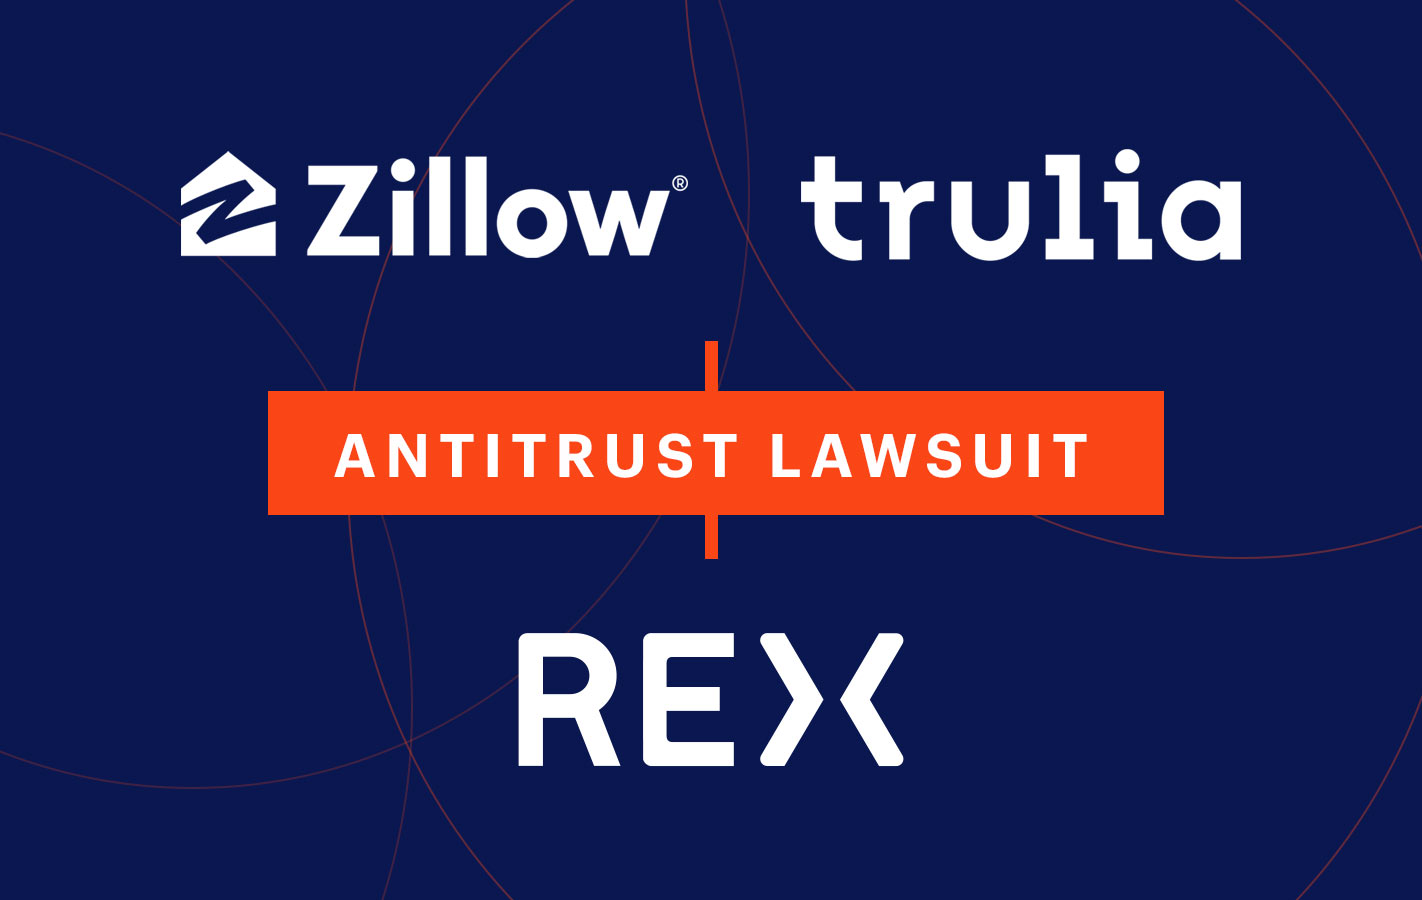 Zillow and Trulia Antitrust Lawsuit with REX